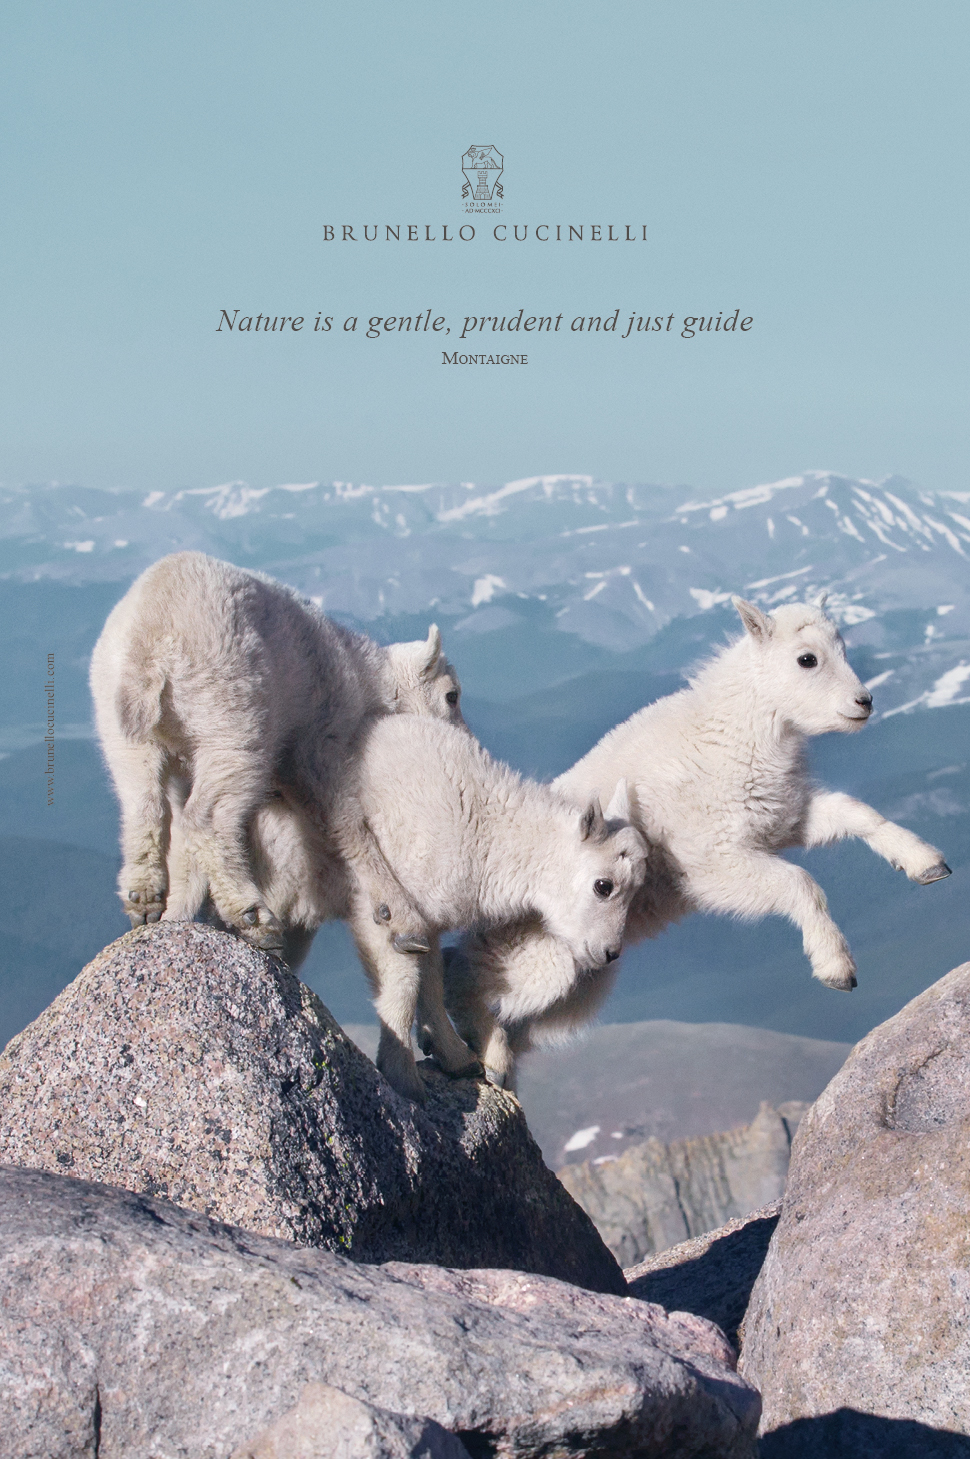 Nature is a gentle, prudent and just guide.